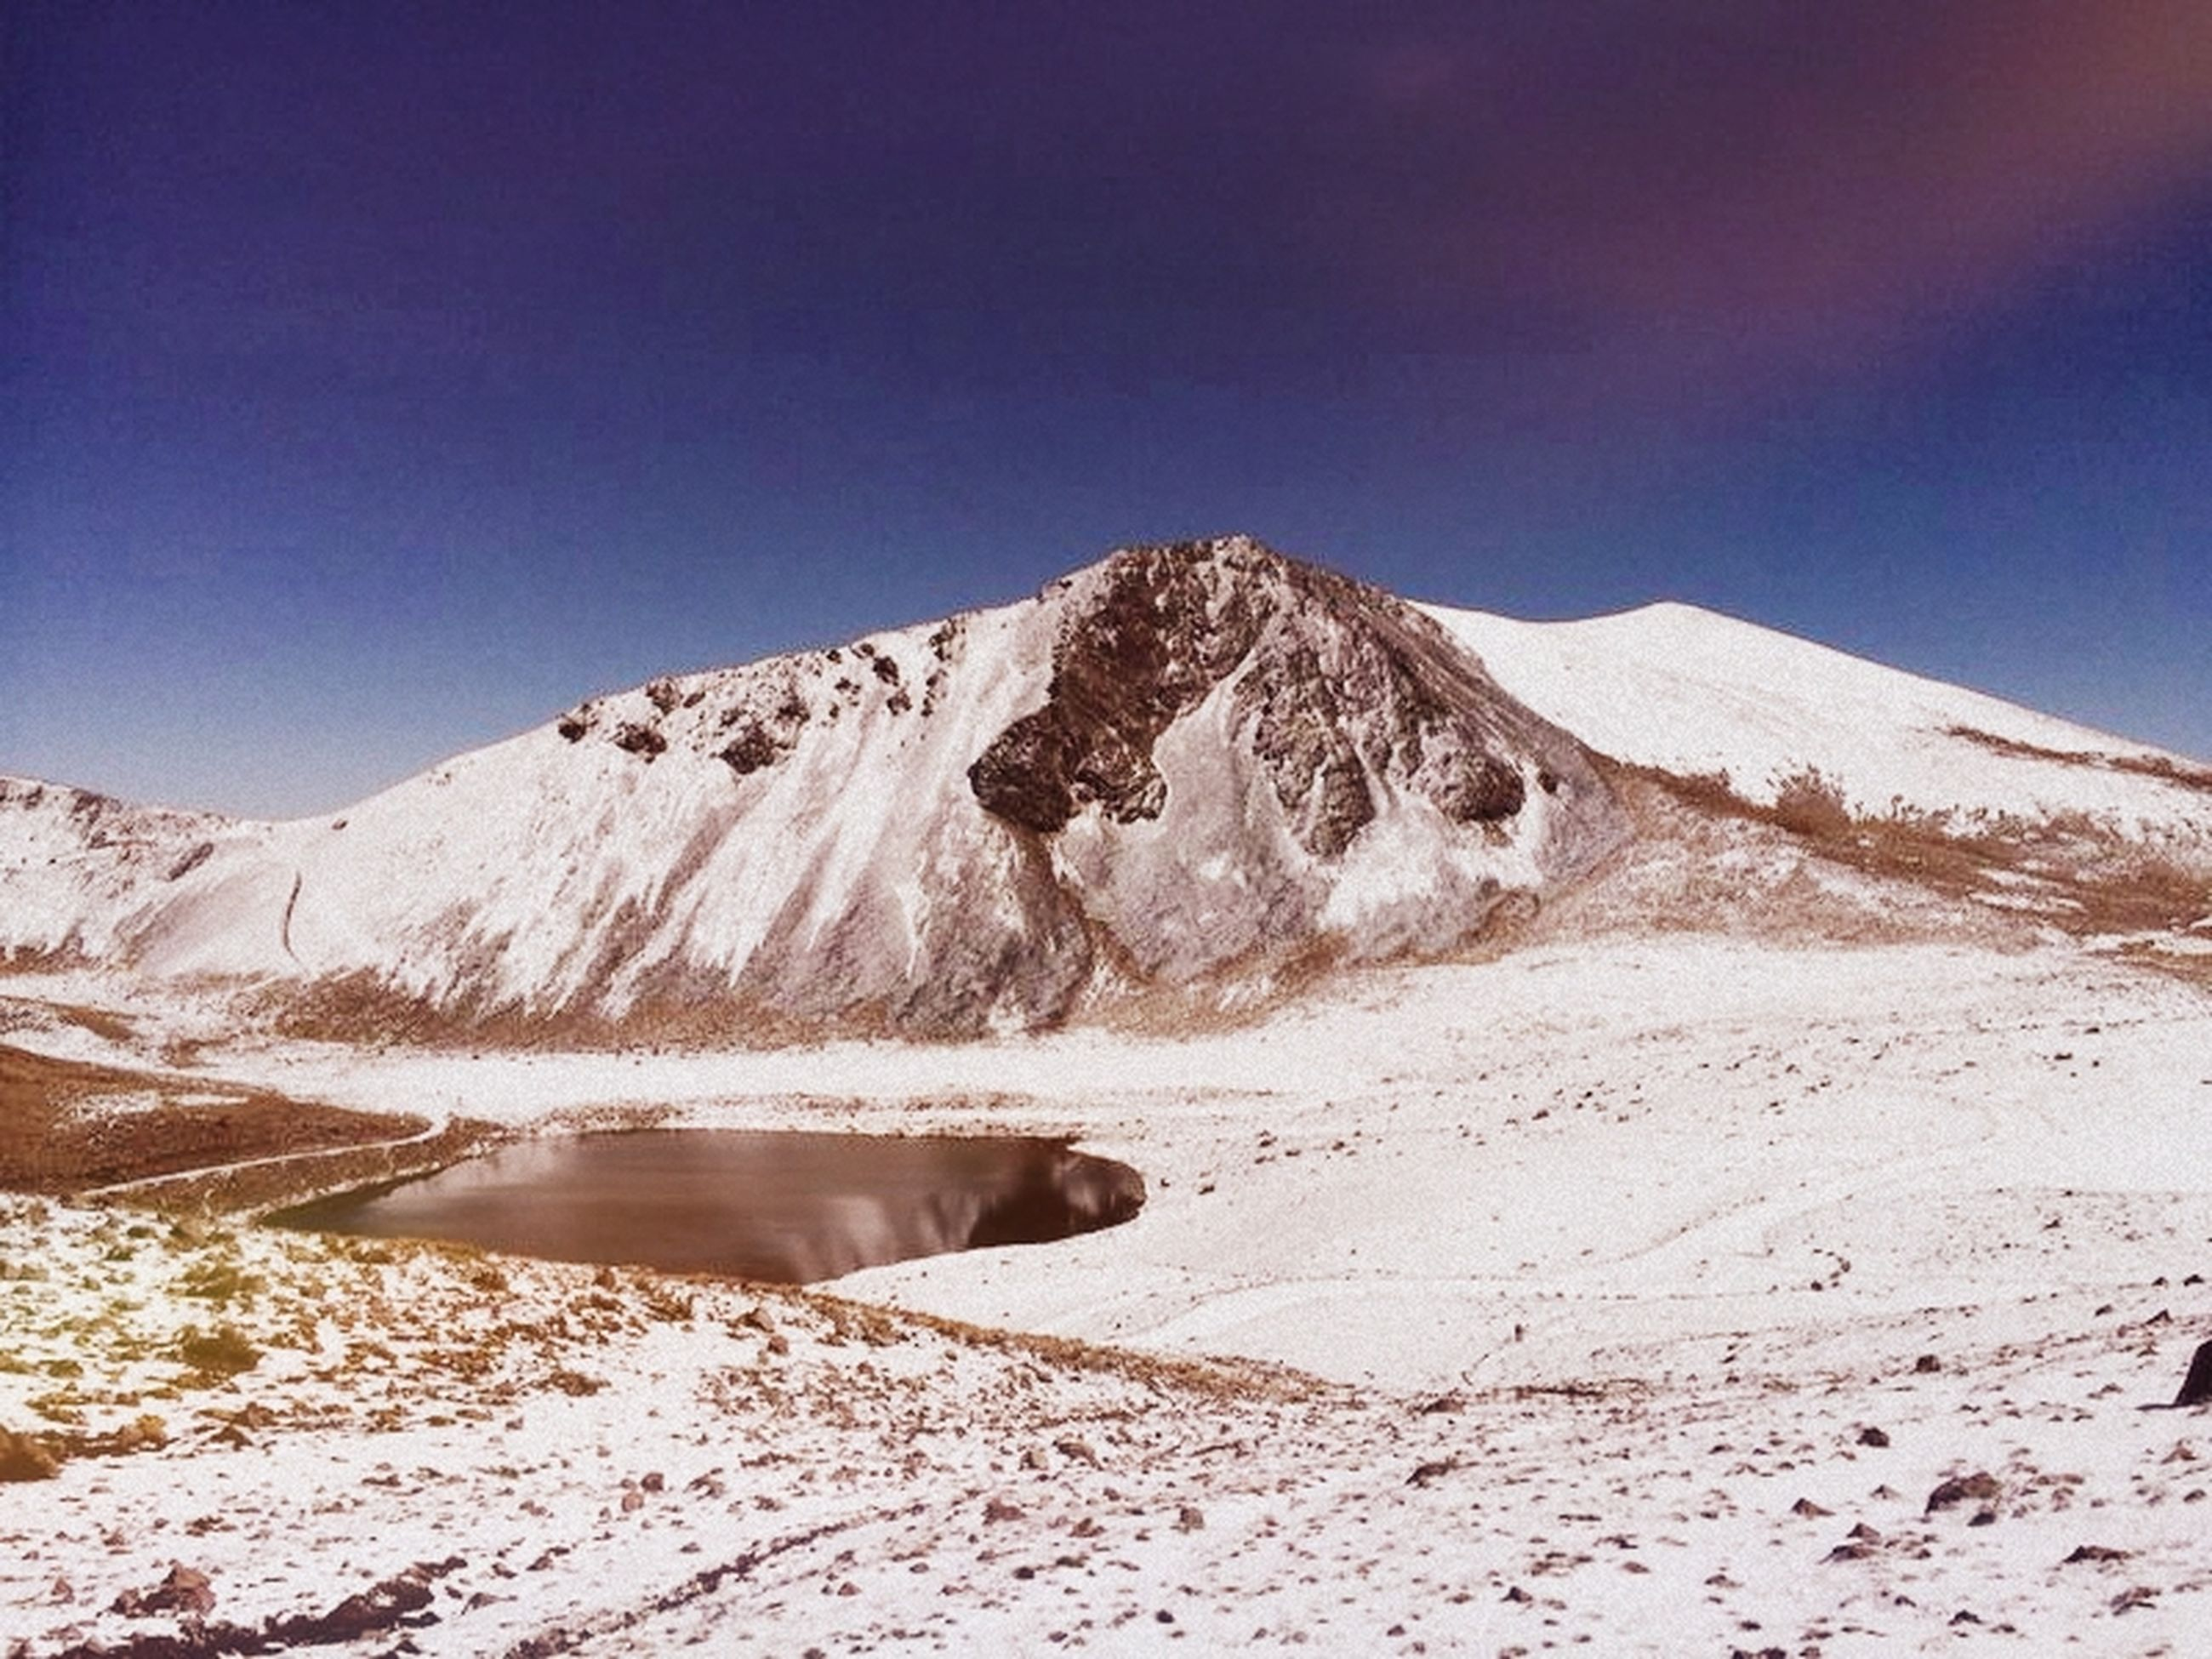 snow, mountain, winter, cold temperature, mountain range, tranquil scene, tranquility, season, snowcapped mountain, scenics, beauty in nature, landscape, nature, weather, sky, non-urban scene, clear sky, blue, physical geography, frozen